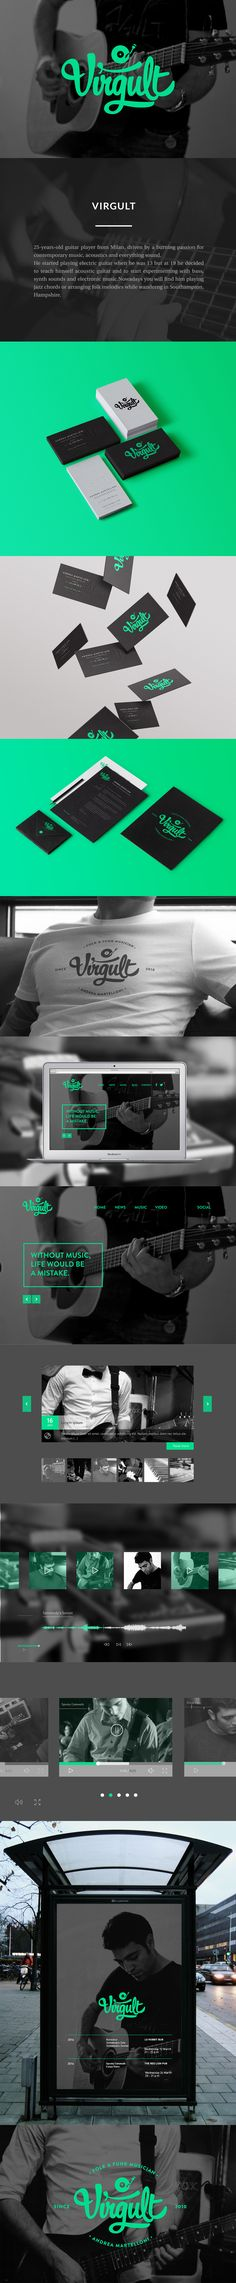 Identity concept for Andrea Martelloni aka Virgult.25-years-old guitar player from Milan, driven by a burning passion for contemporary music, acoustics and everything sound. He started playing electric guitar when he was 13 but at 19 he decided to teach…